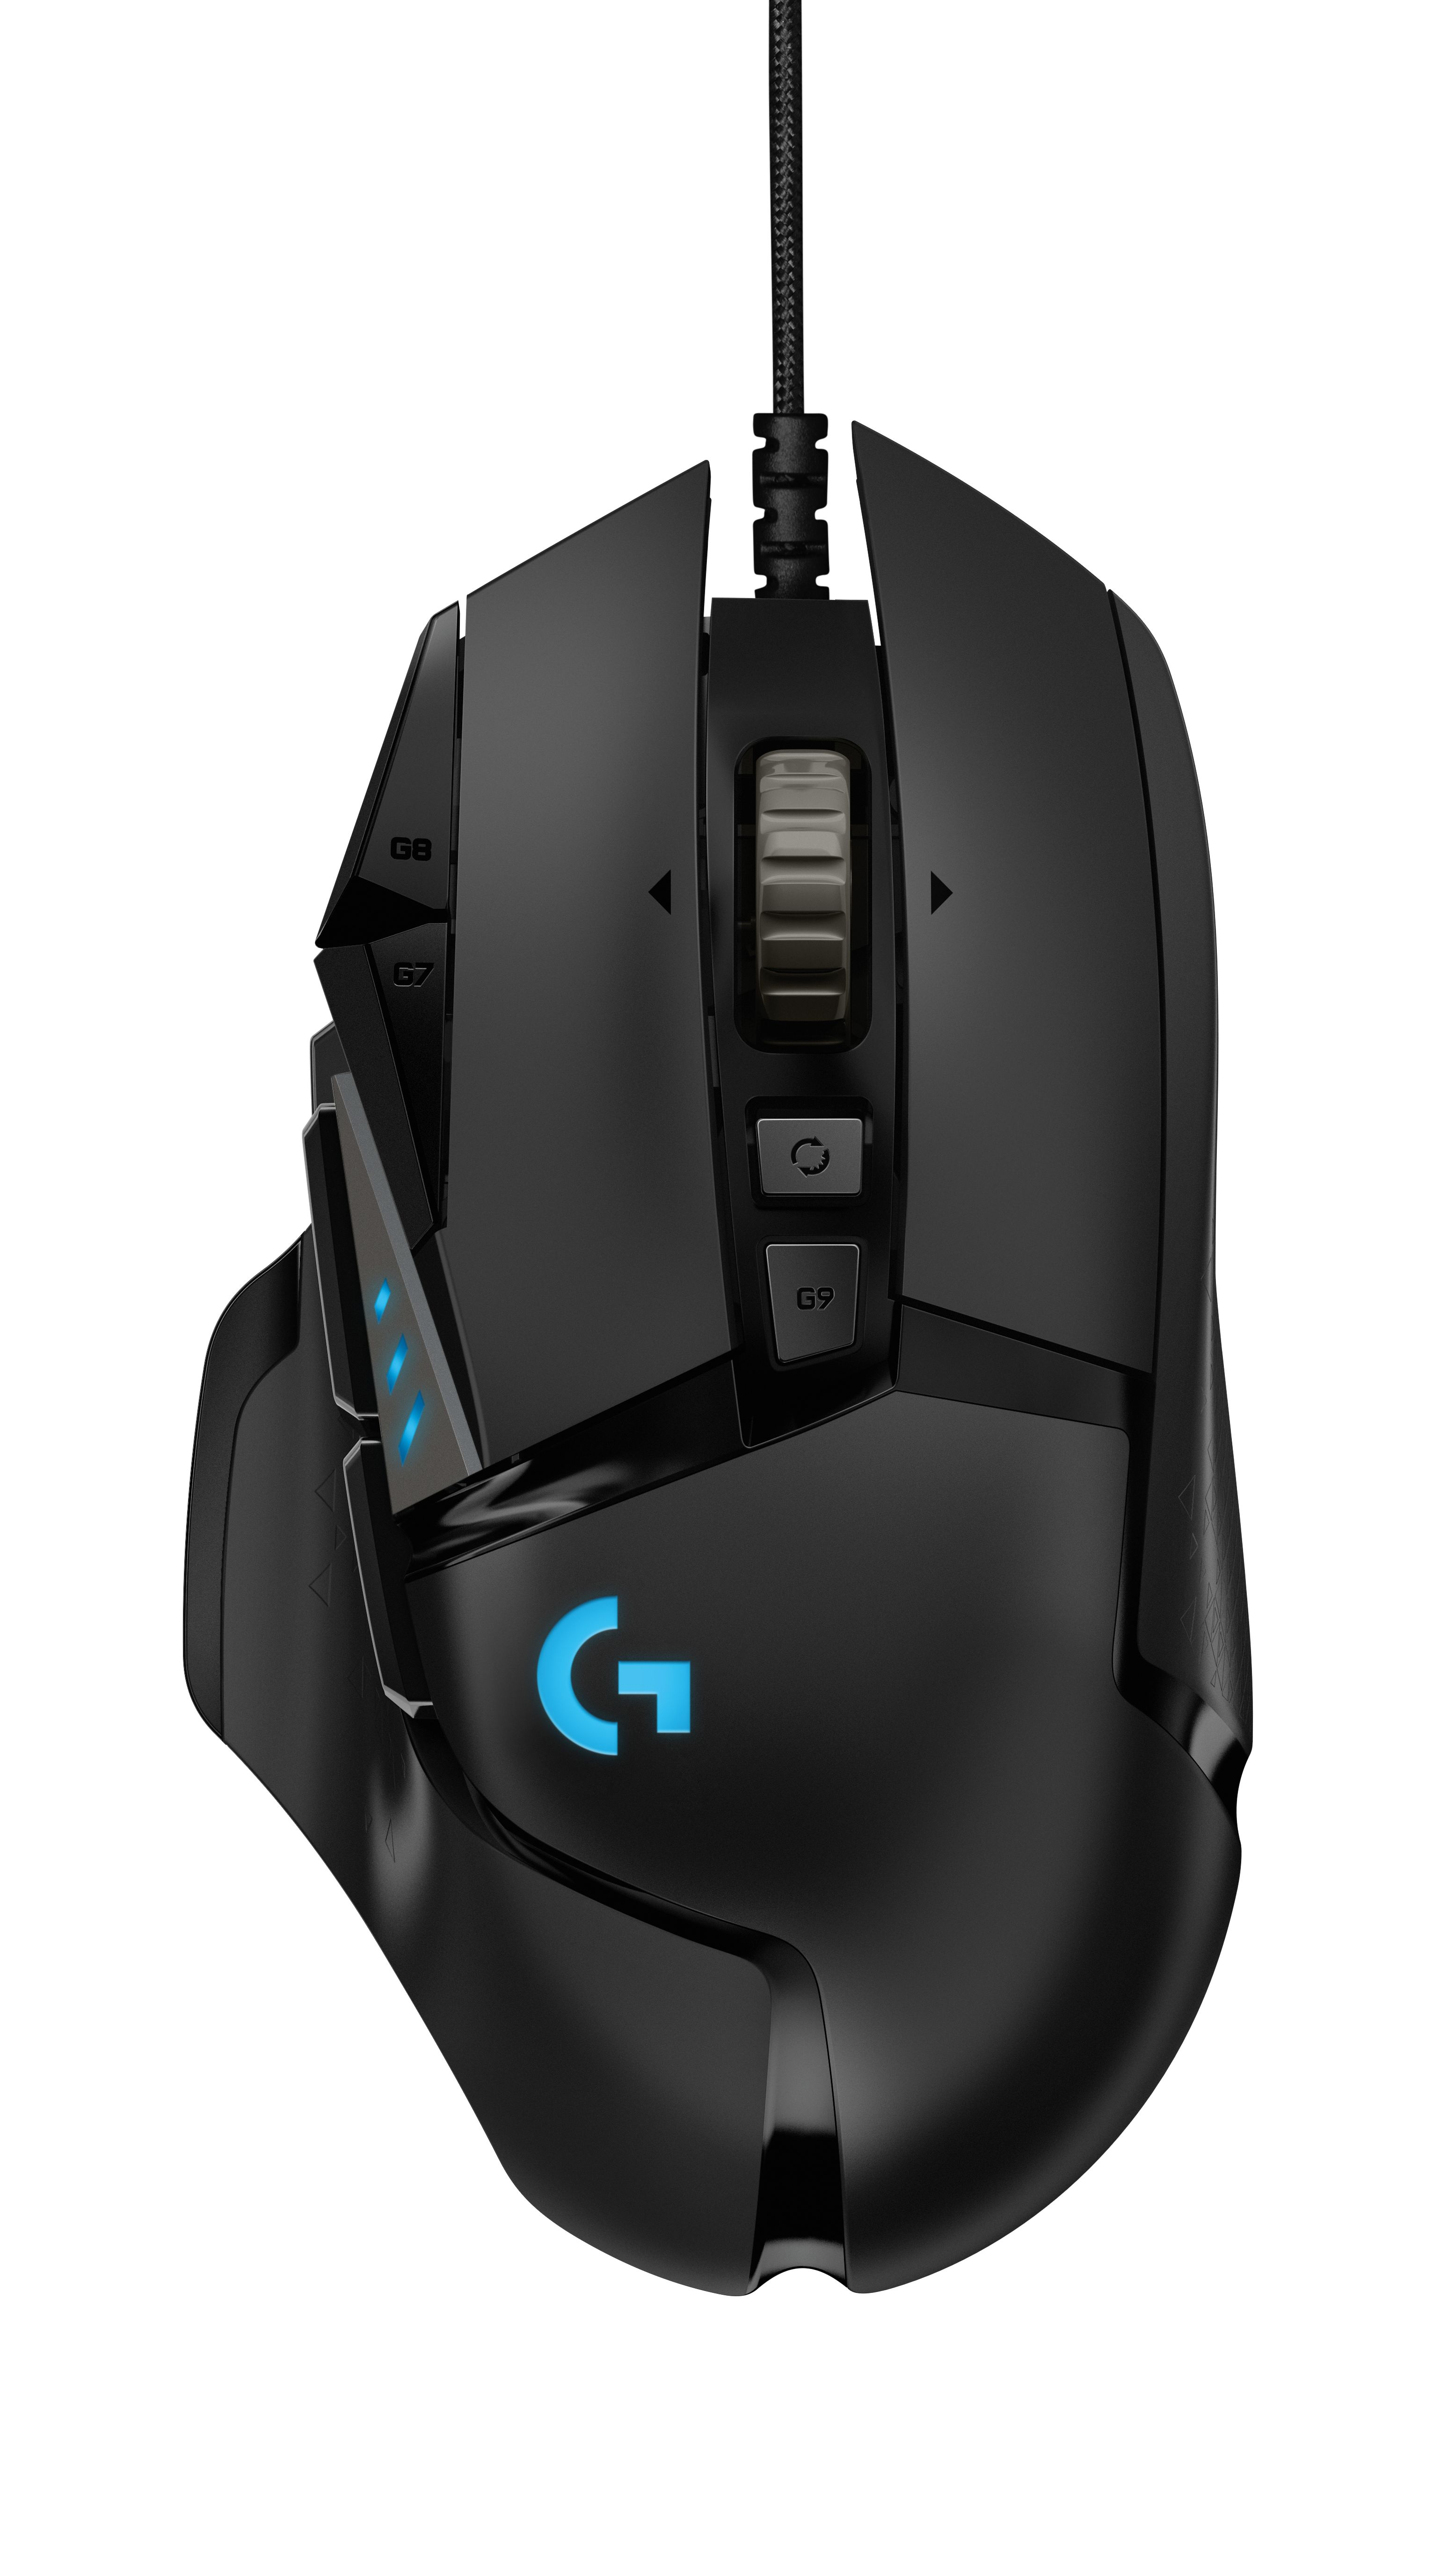 Logitech - G502 HERO High Performance Gaming Mouse